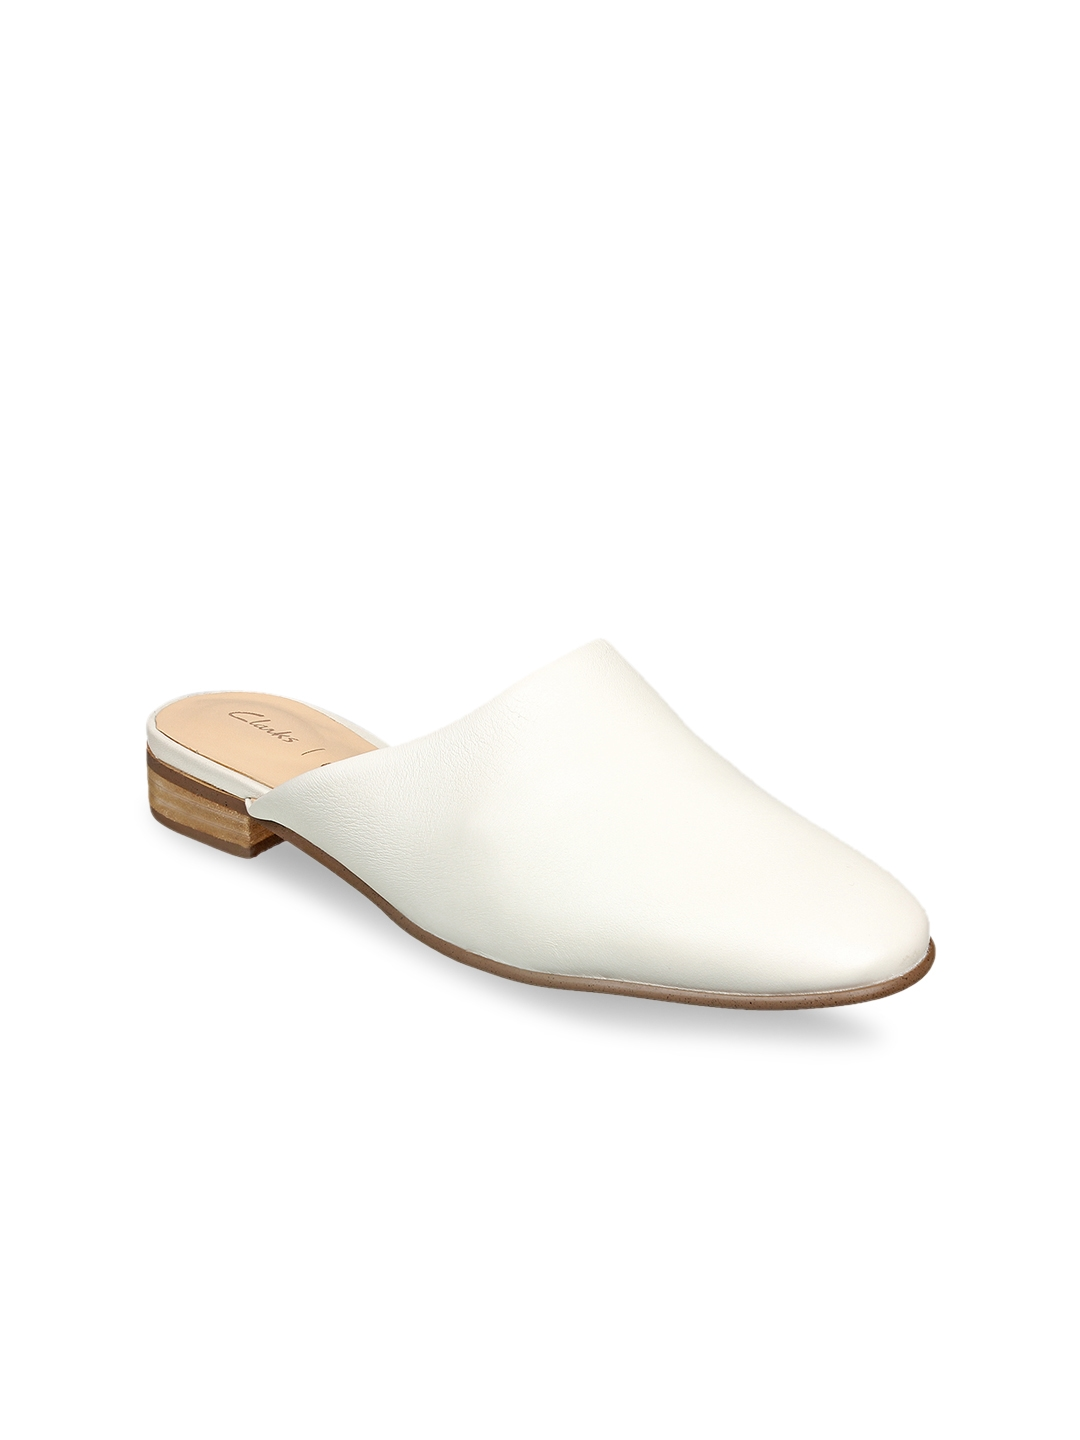 7a51ac5ae Buy Clarks Women White Solid Leather Mules - Flats for Women 7492585 ...